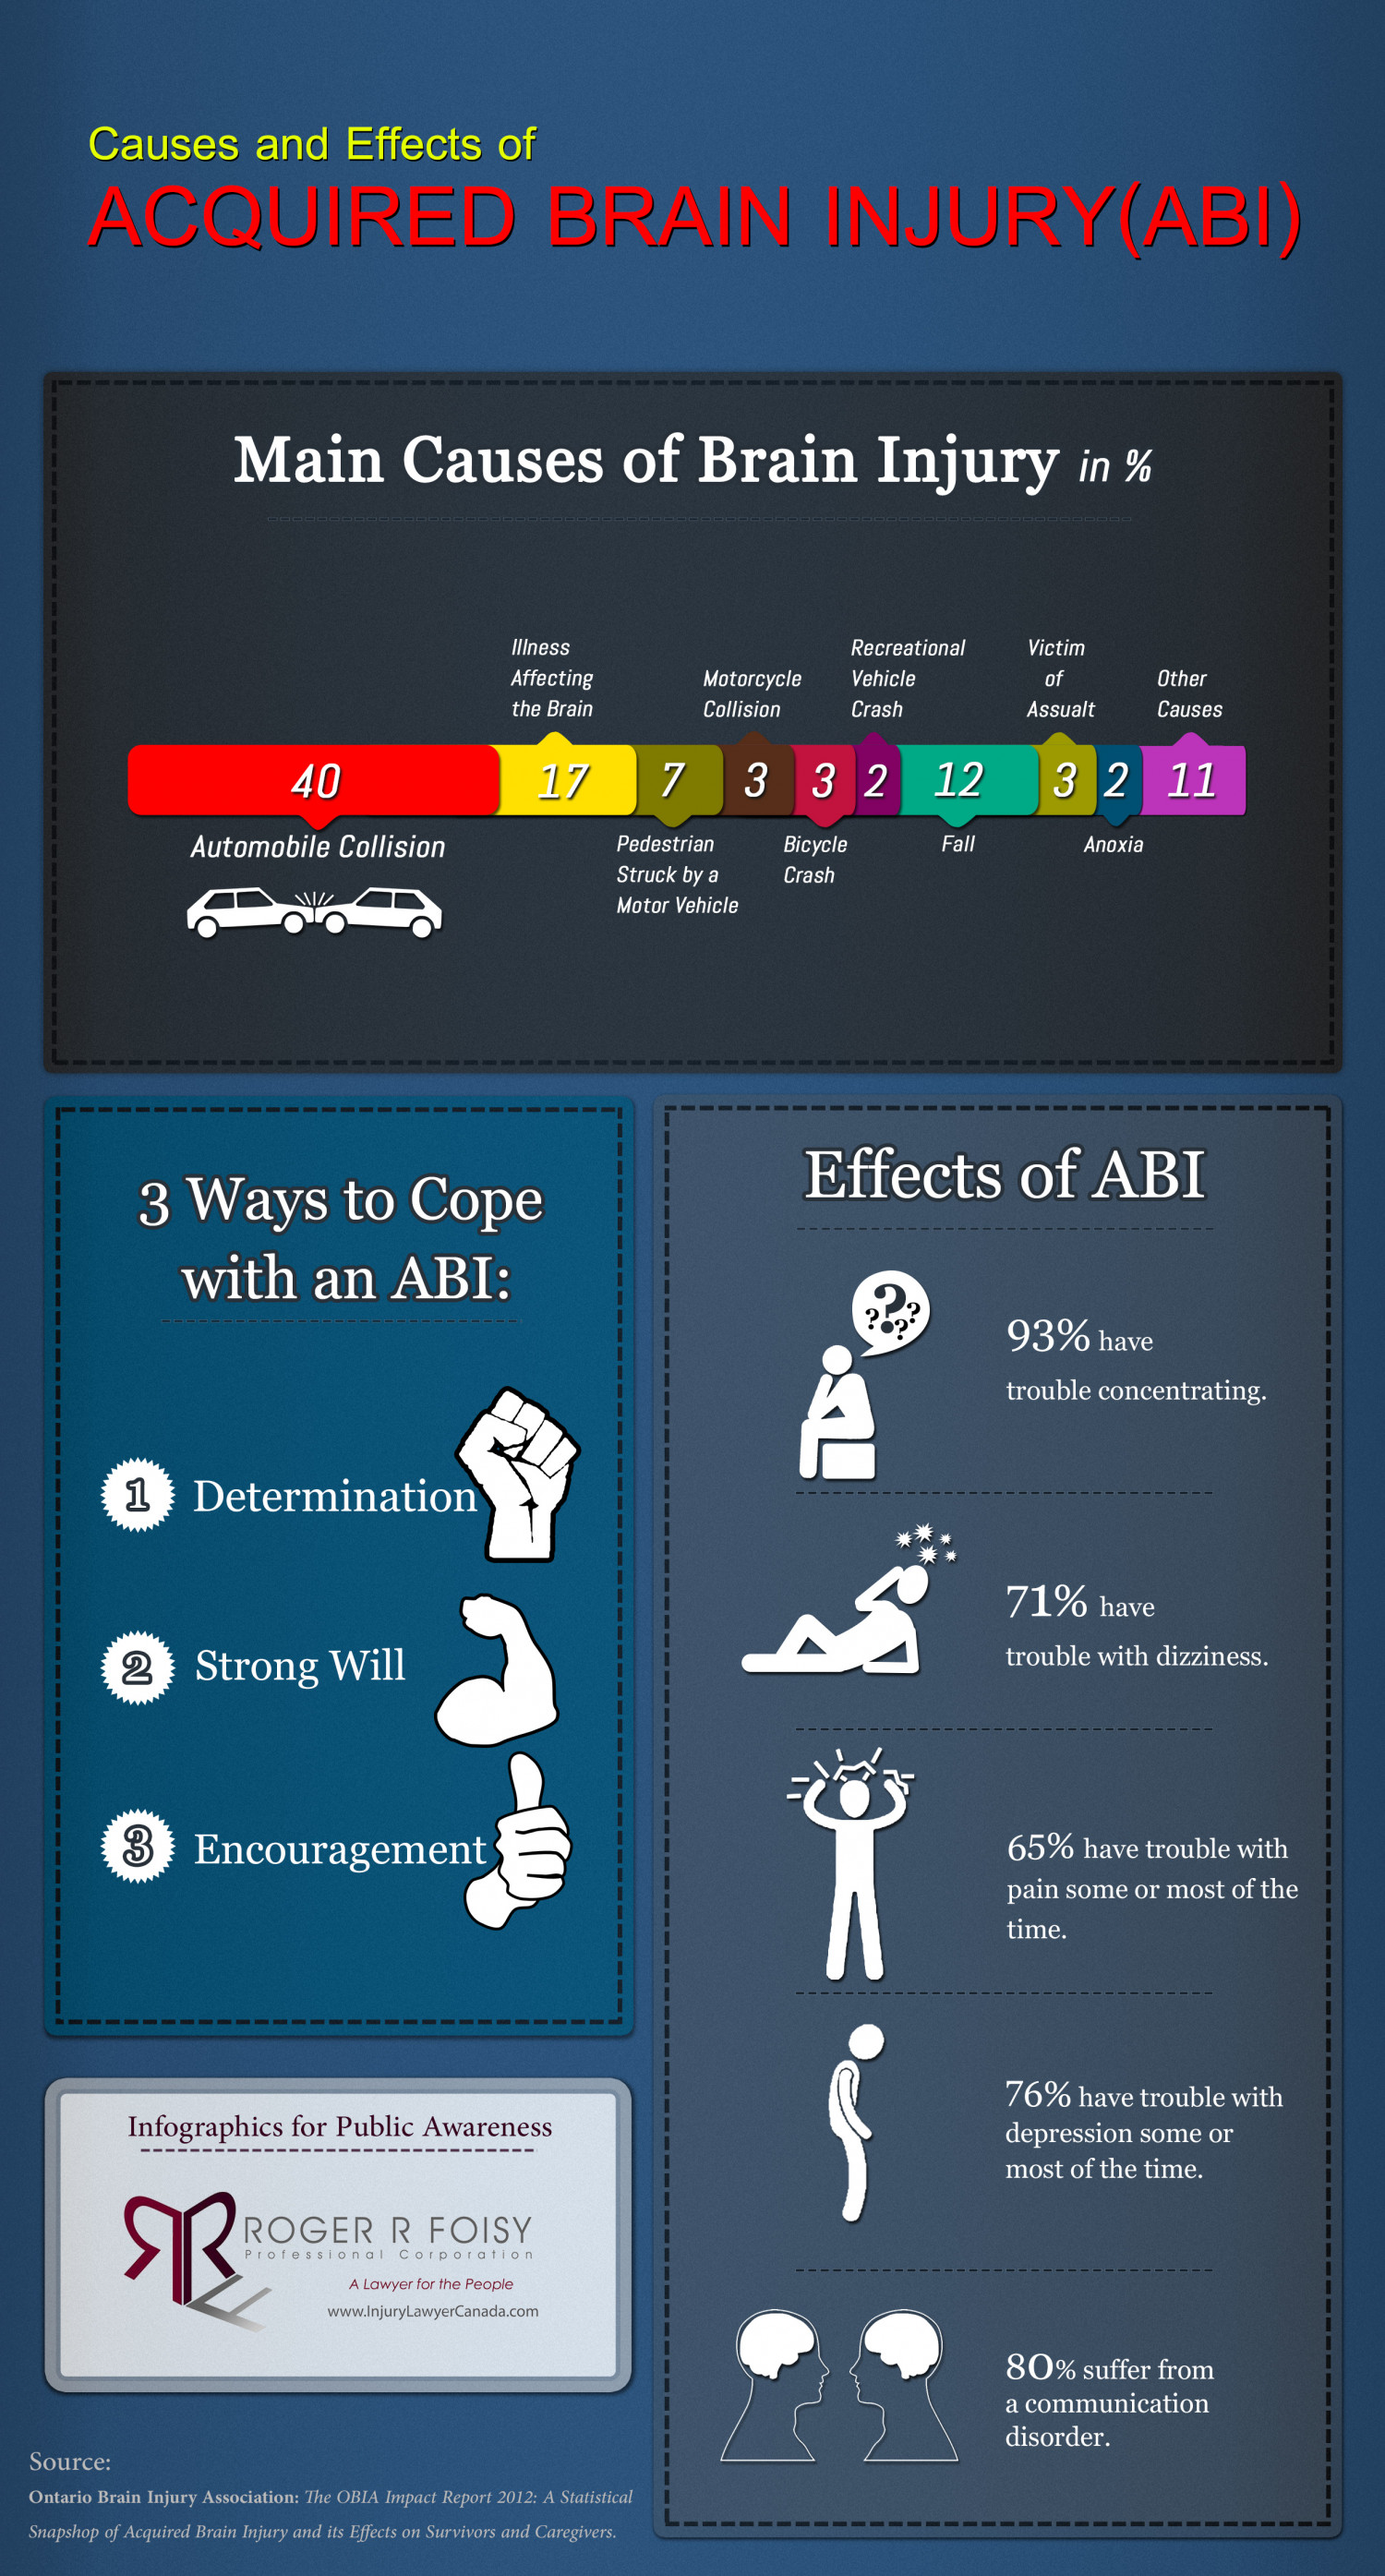 Causes and Effects of Acquired Brain Injury Infographic